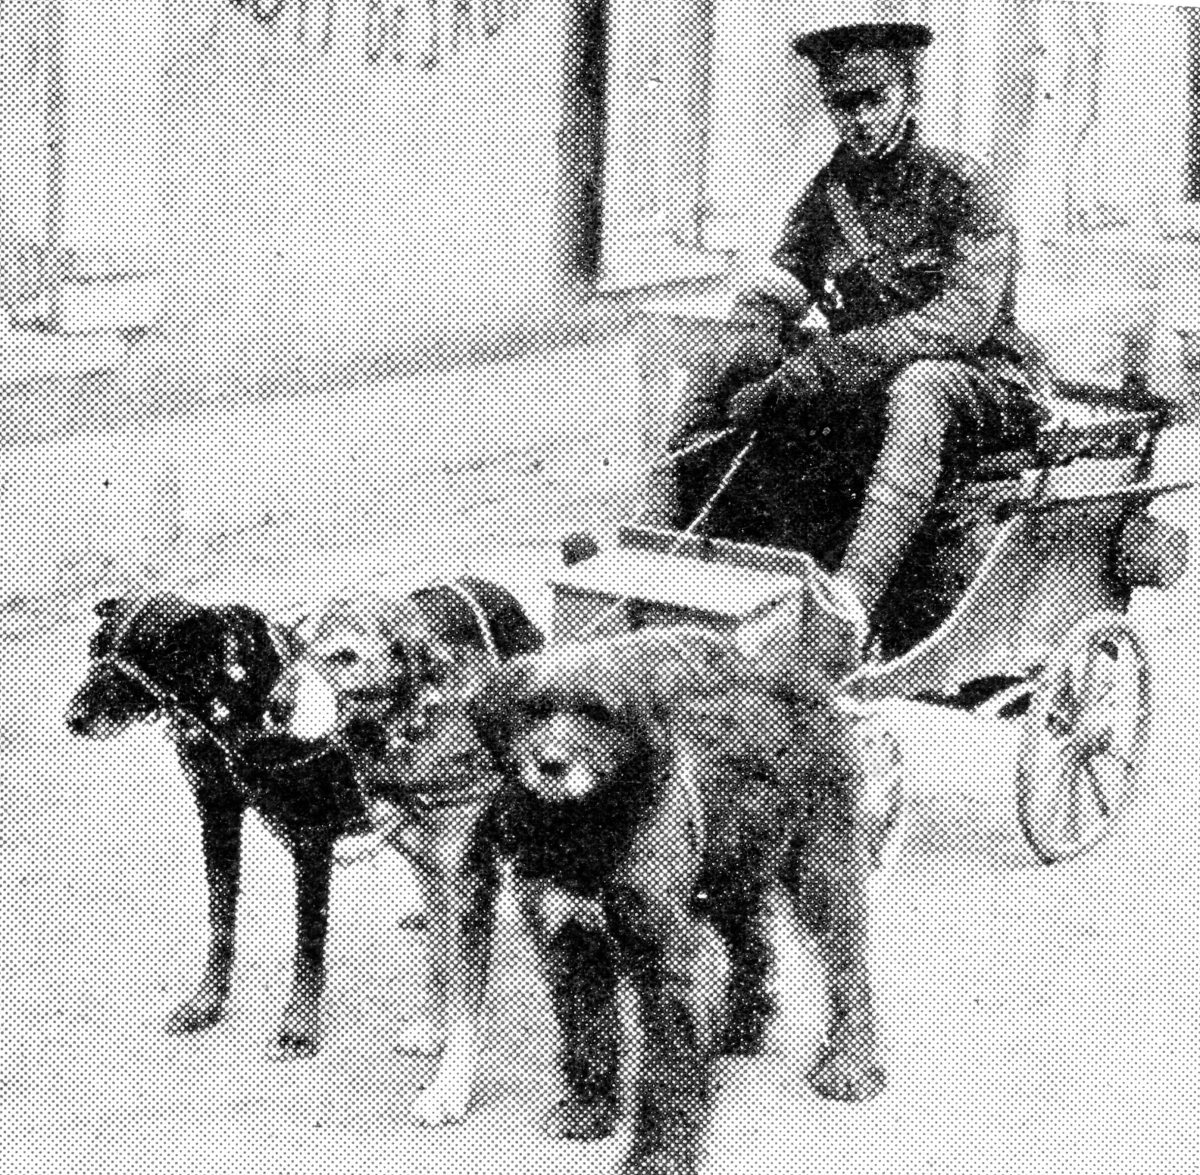 War-Dogs of First World War (WWI, First Great European War) 1914-1918